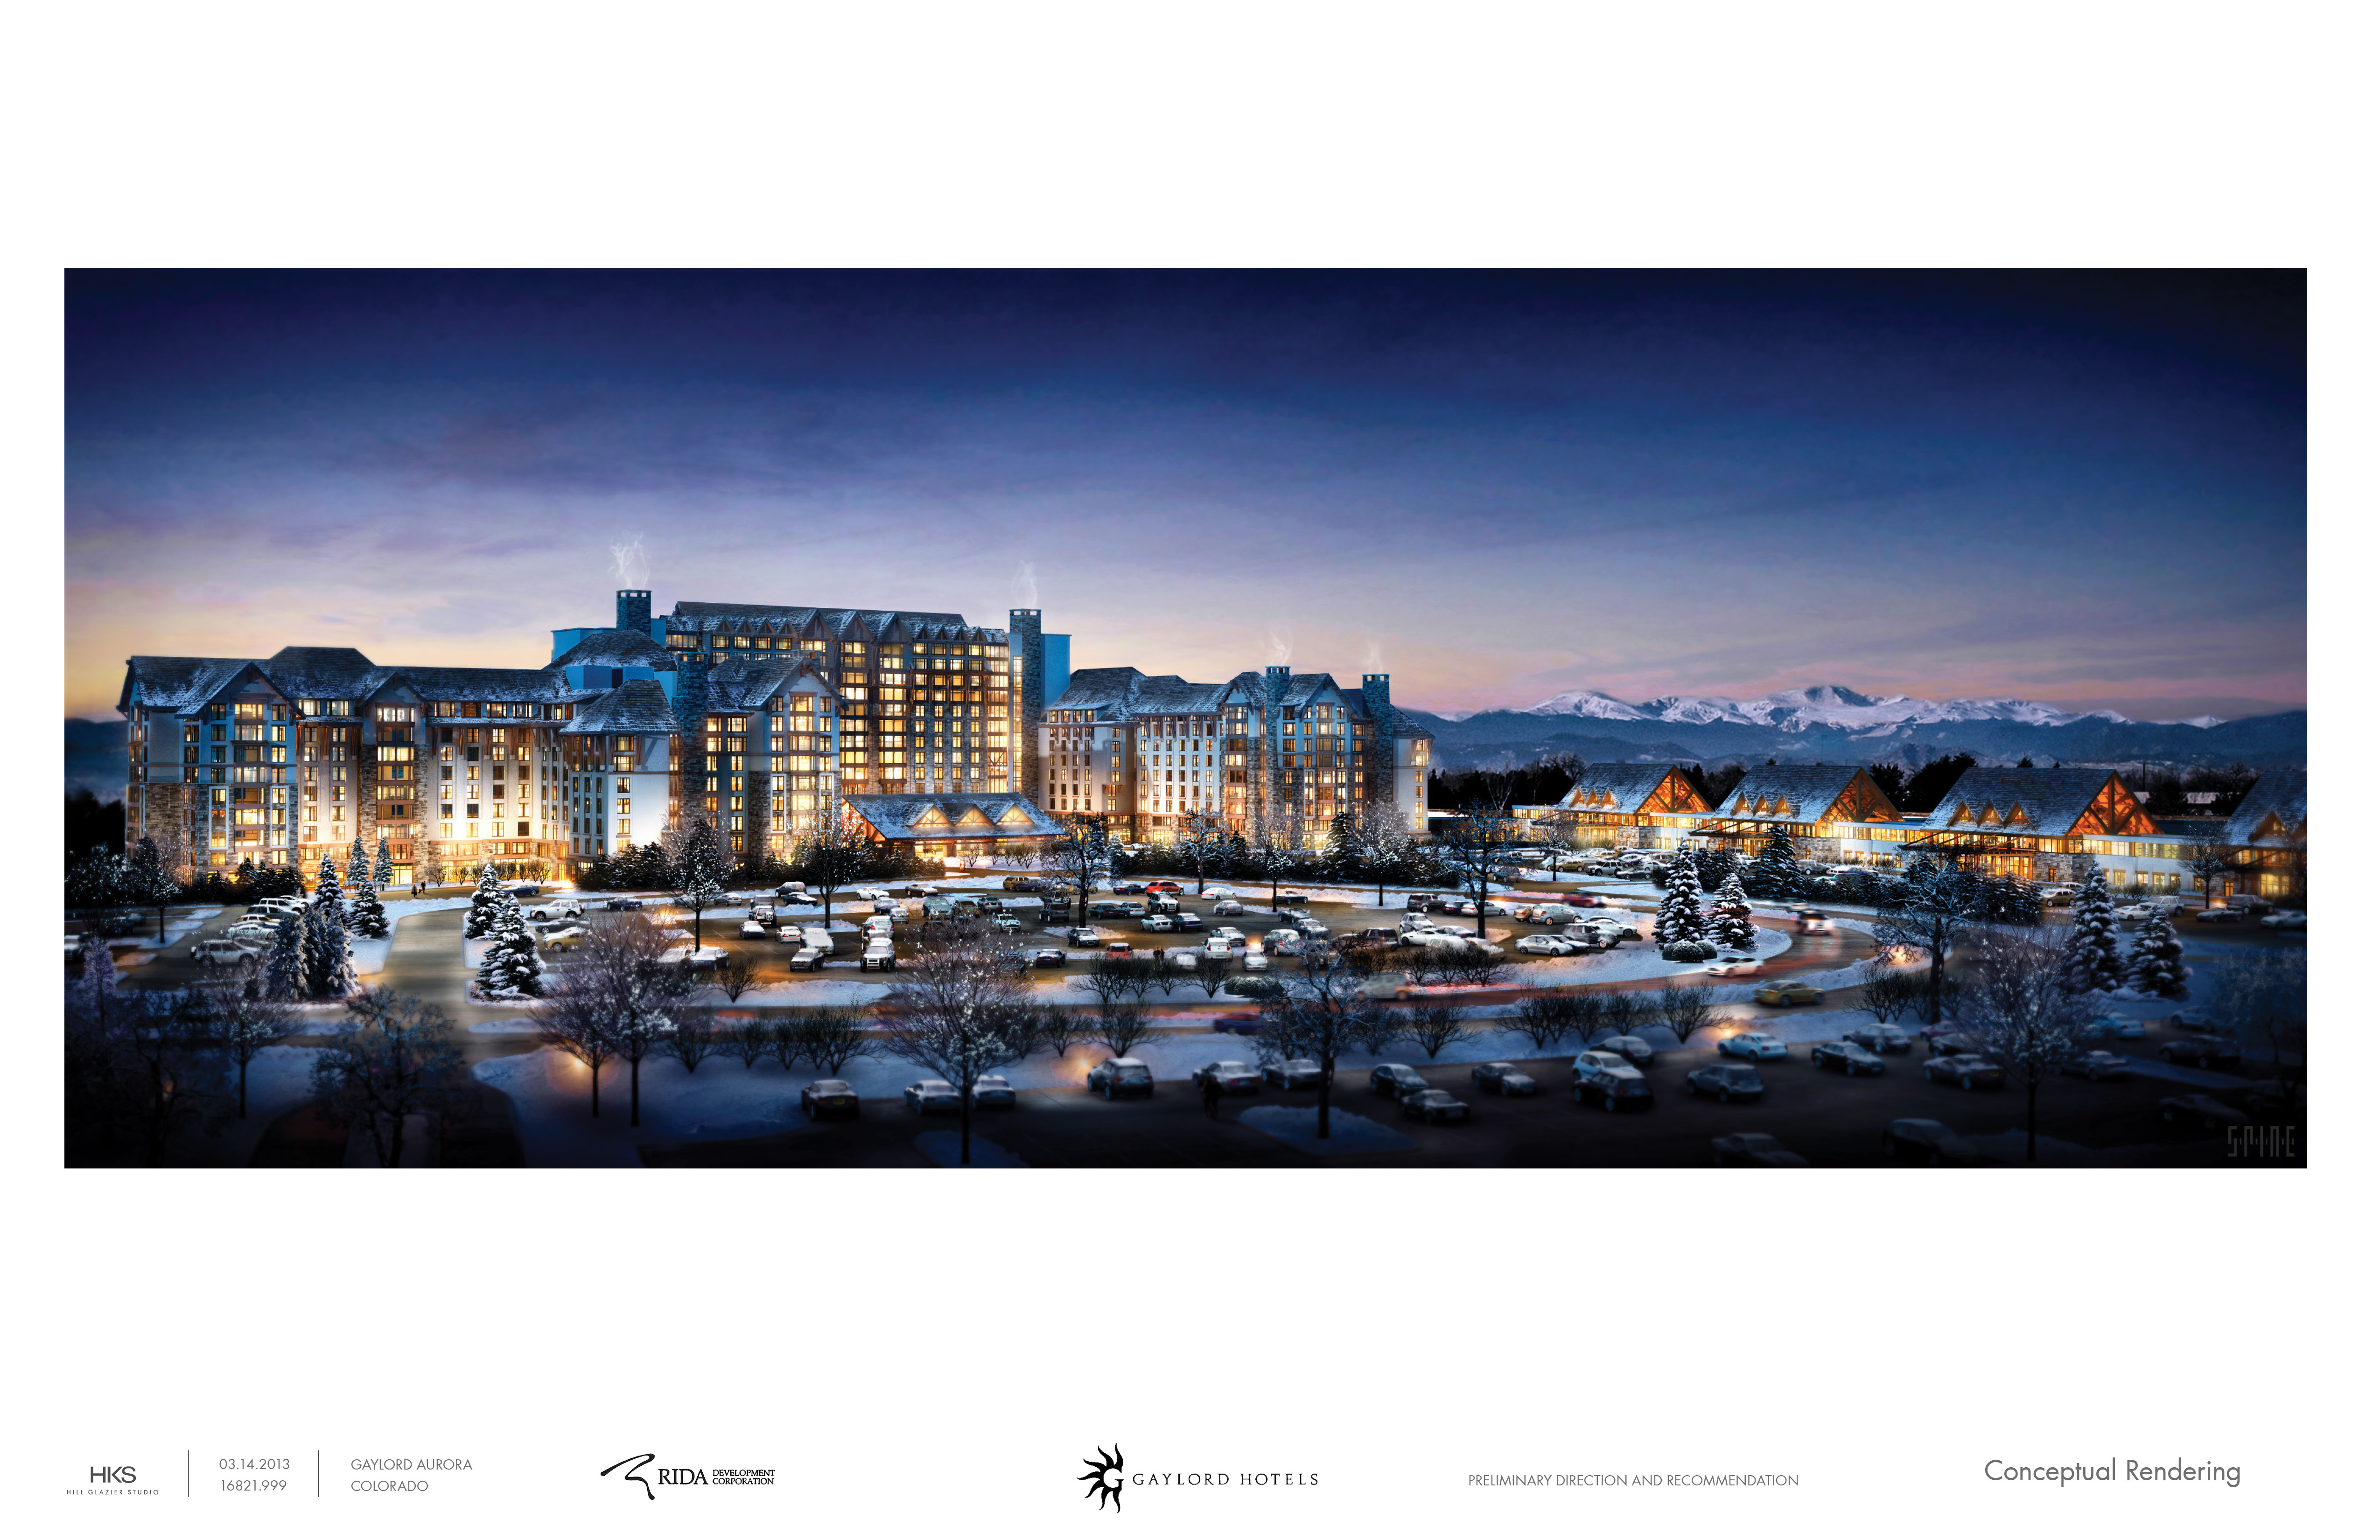 gaylord hotel vote pushes aurora project closer to groundbreaking